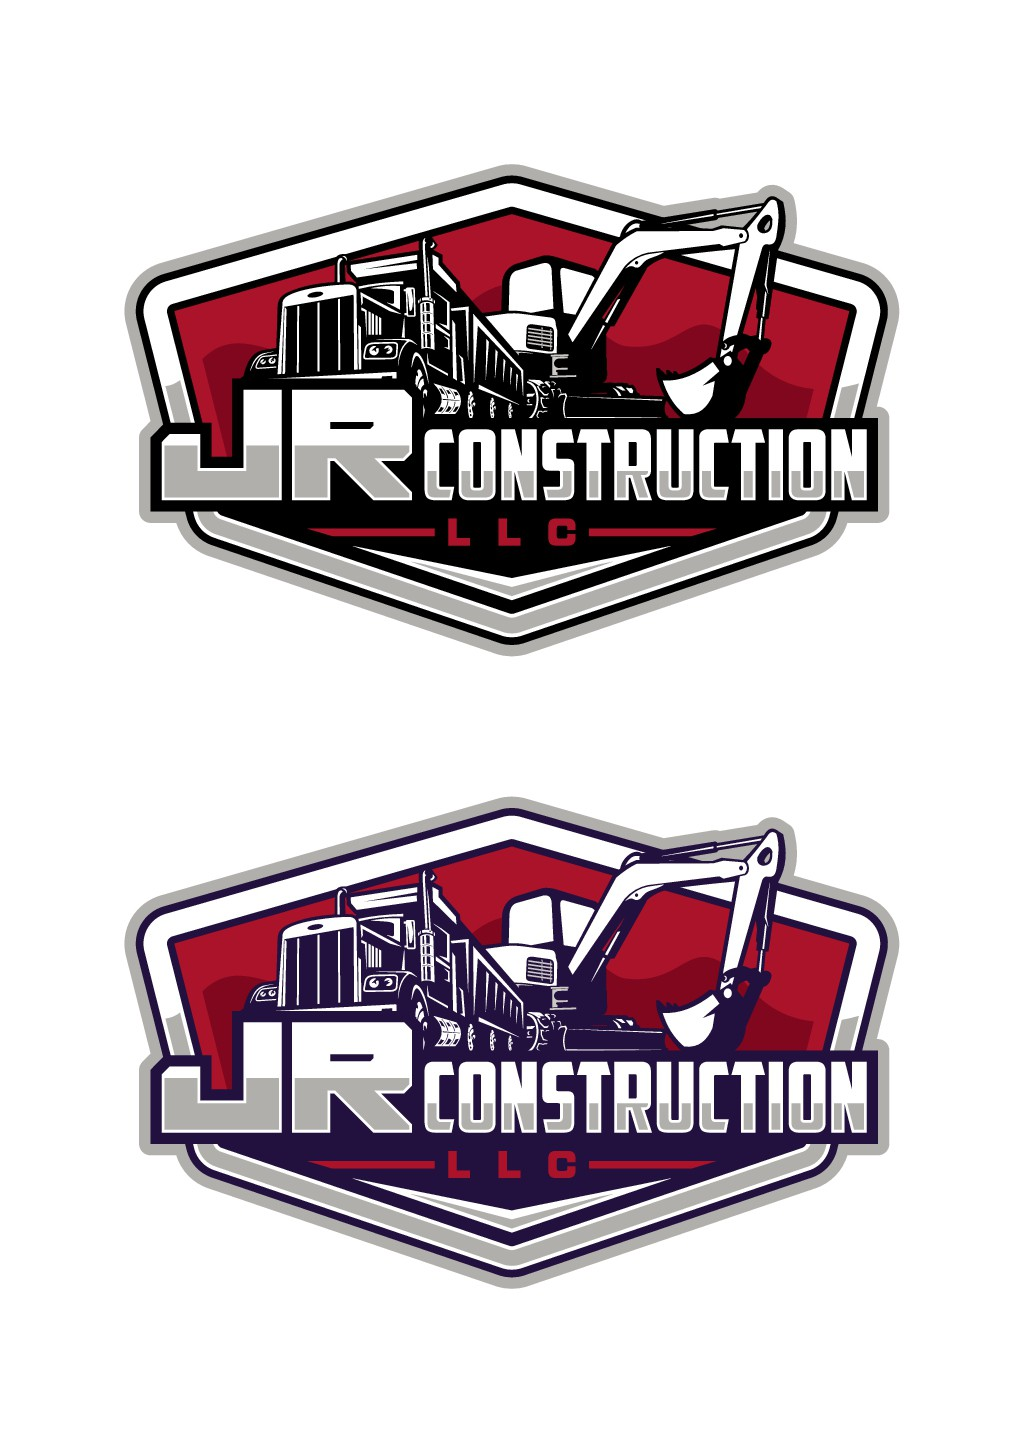 Quickly growing construction company